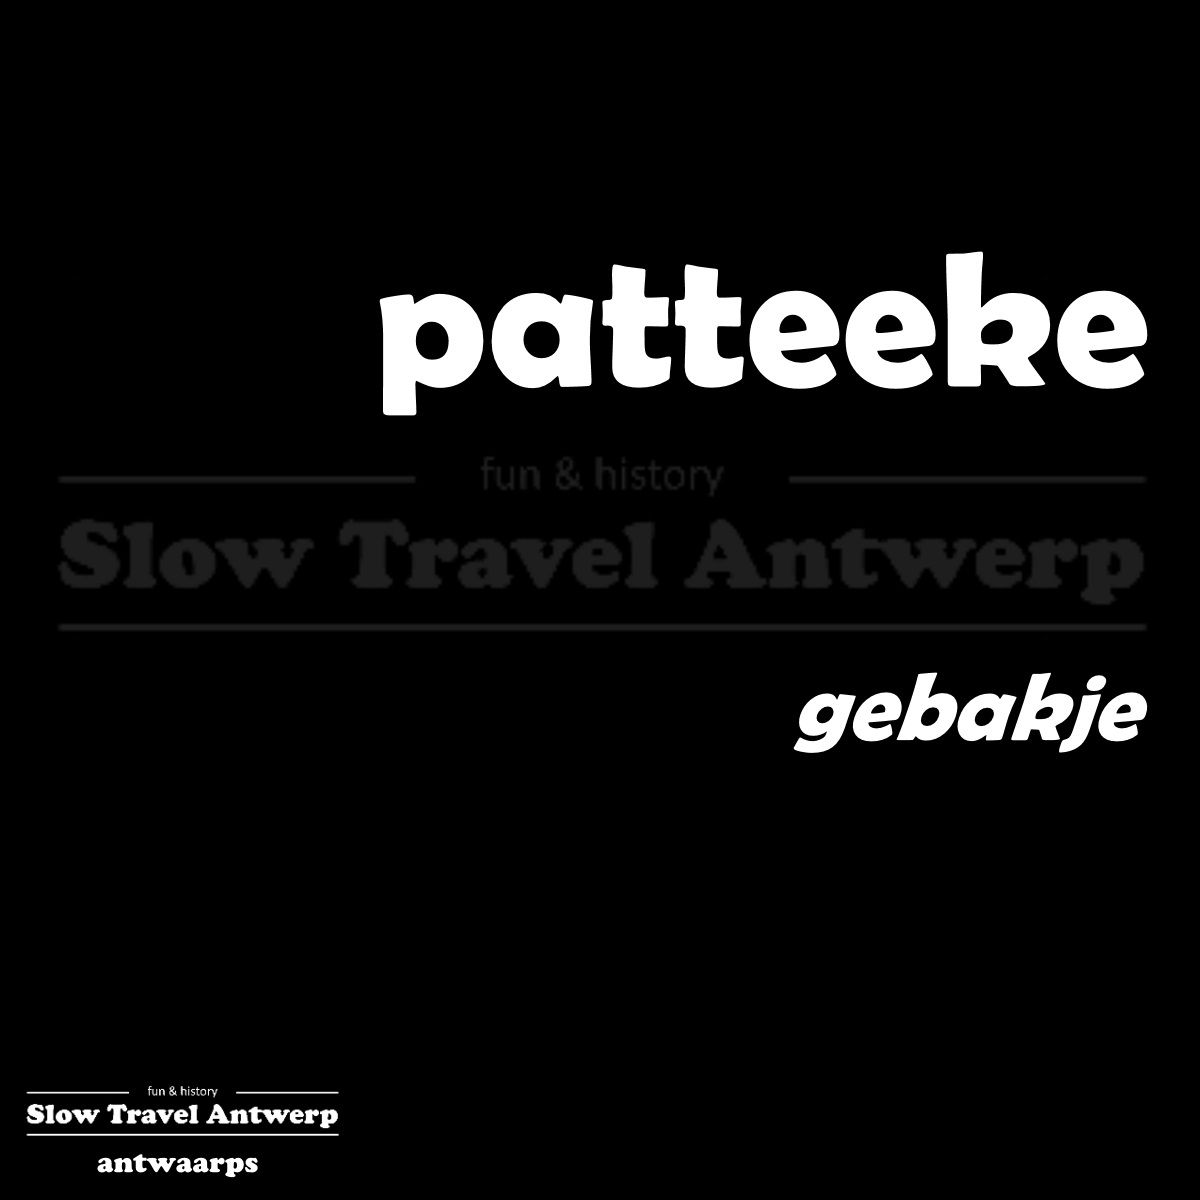 patteeke (Antwaarps) - gebakje (Nederlands) - cake (English)